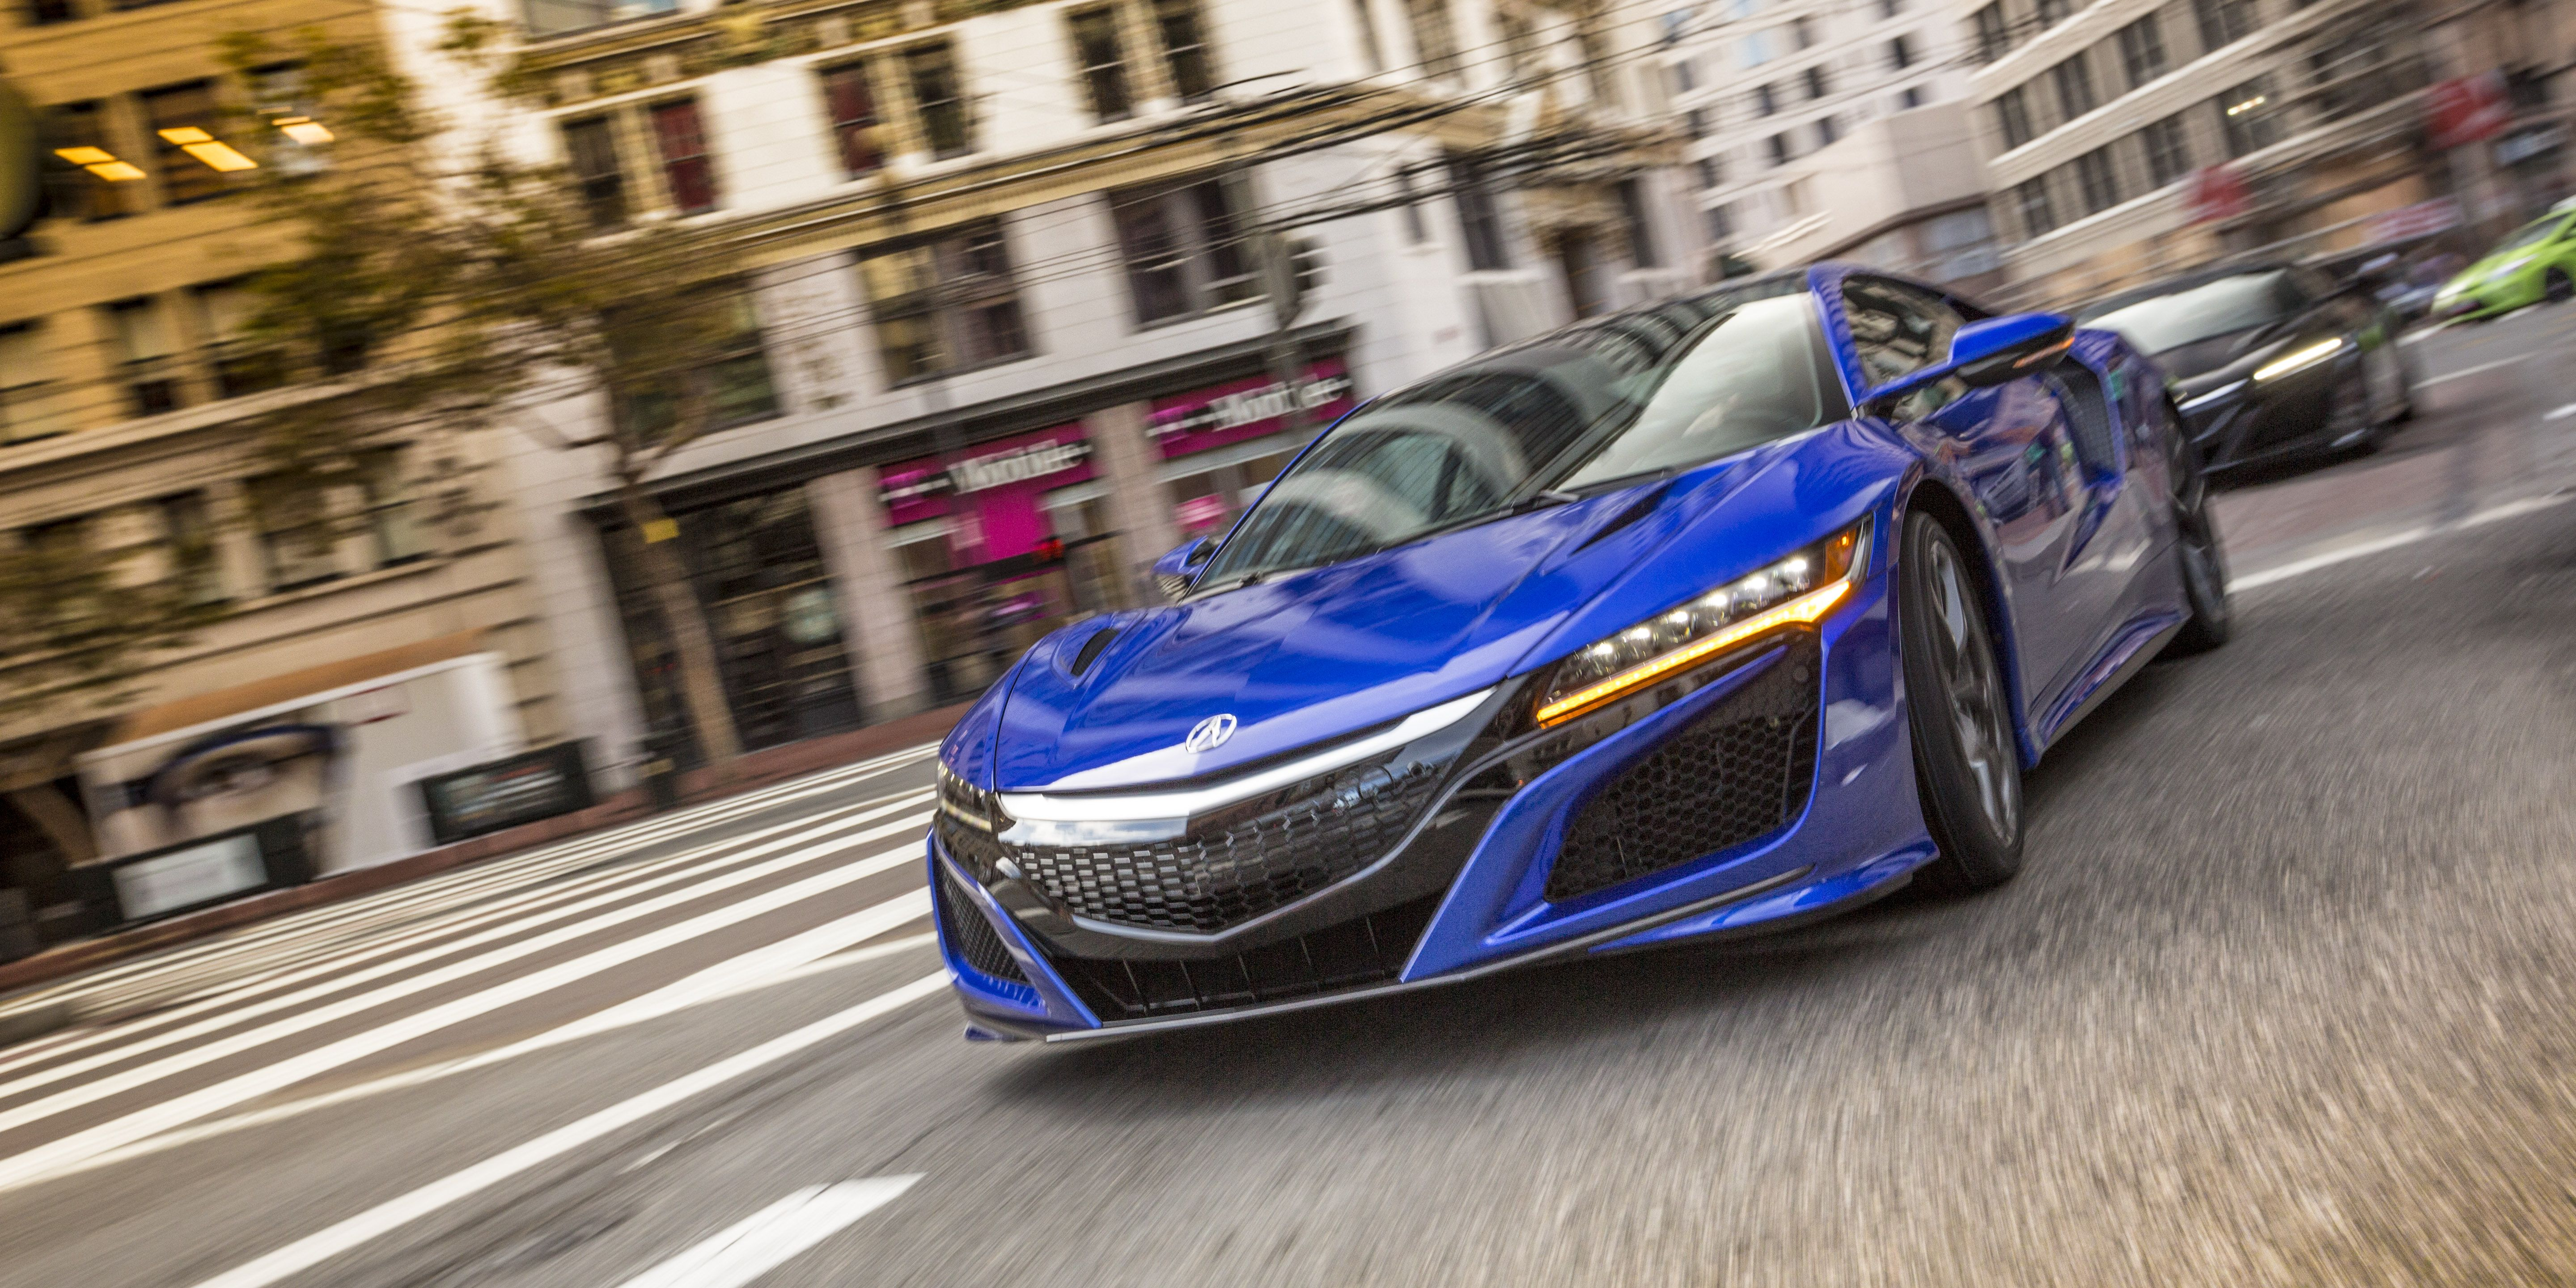 """<p>After waiting and waiting and waiting, Acura finally gives us a twin-turbo, dry-sump, 3.5-liter V6 NSX, which is far different from the naturally aspirated original and the first concept, which was also N/A. An additional three electric motors add to the engine's power, making the NSX's total power output to be 573-hp. However, in our first drive, we thought it <a href=""""http://www.roadandtrack.com/new-cars/first-drives/reviews/a27144/2017-acura-nsx-first-drive/"""">sacrificed too much in the way of livability</a>. </p>"""